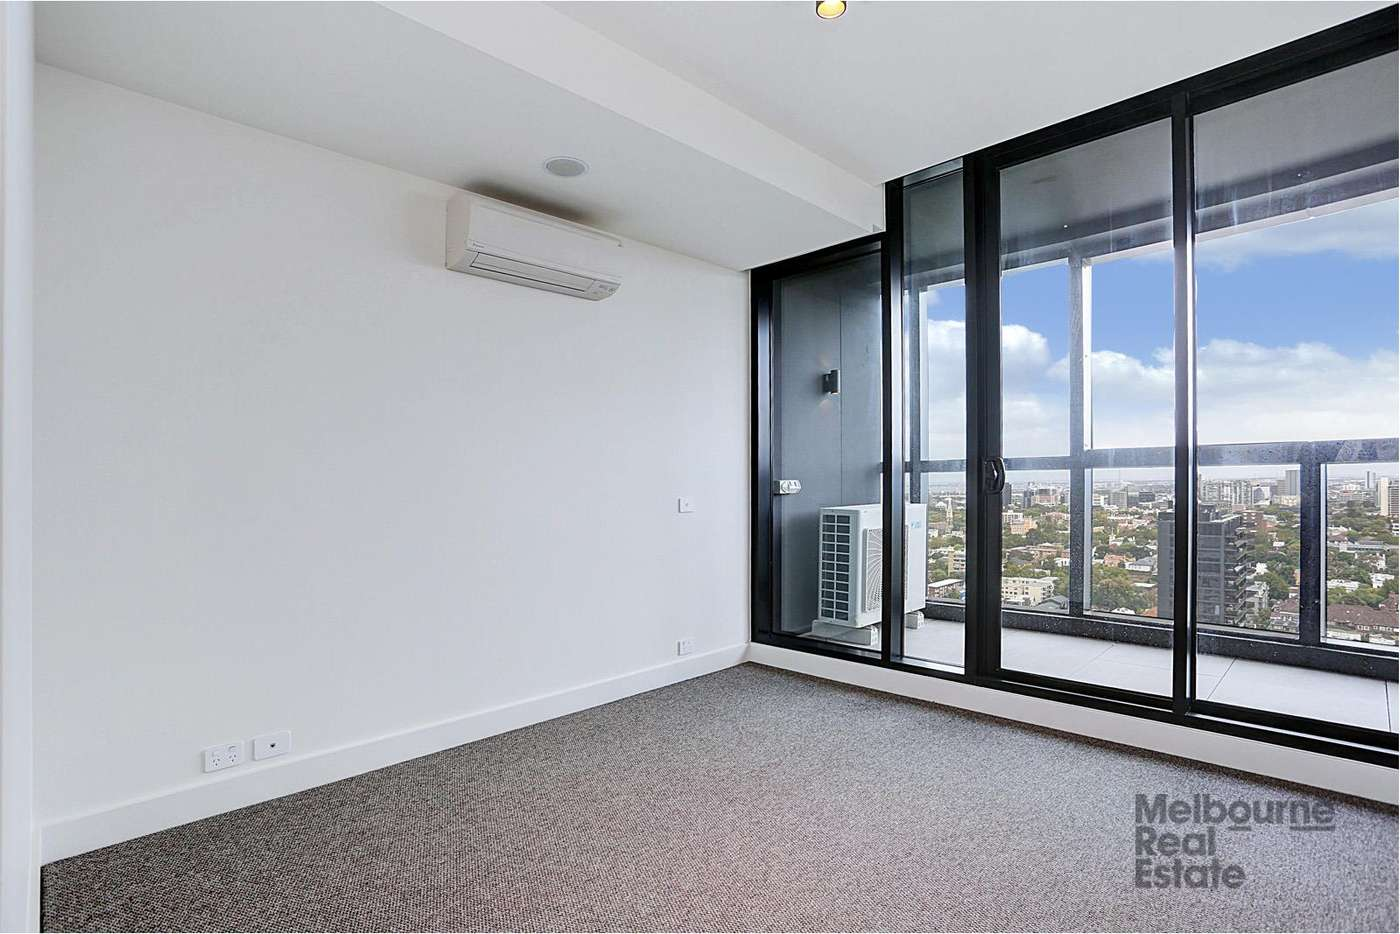 Fifth view of Homely apartment listing, 2802/661 Chapel Street, South Yarra VIC 3141